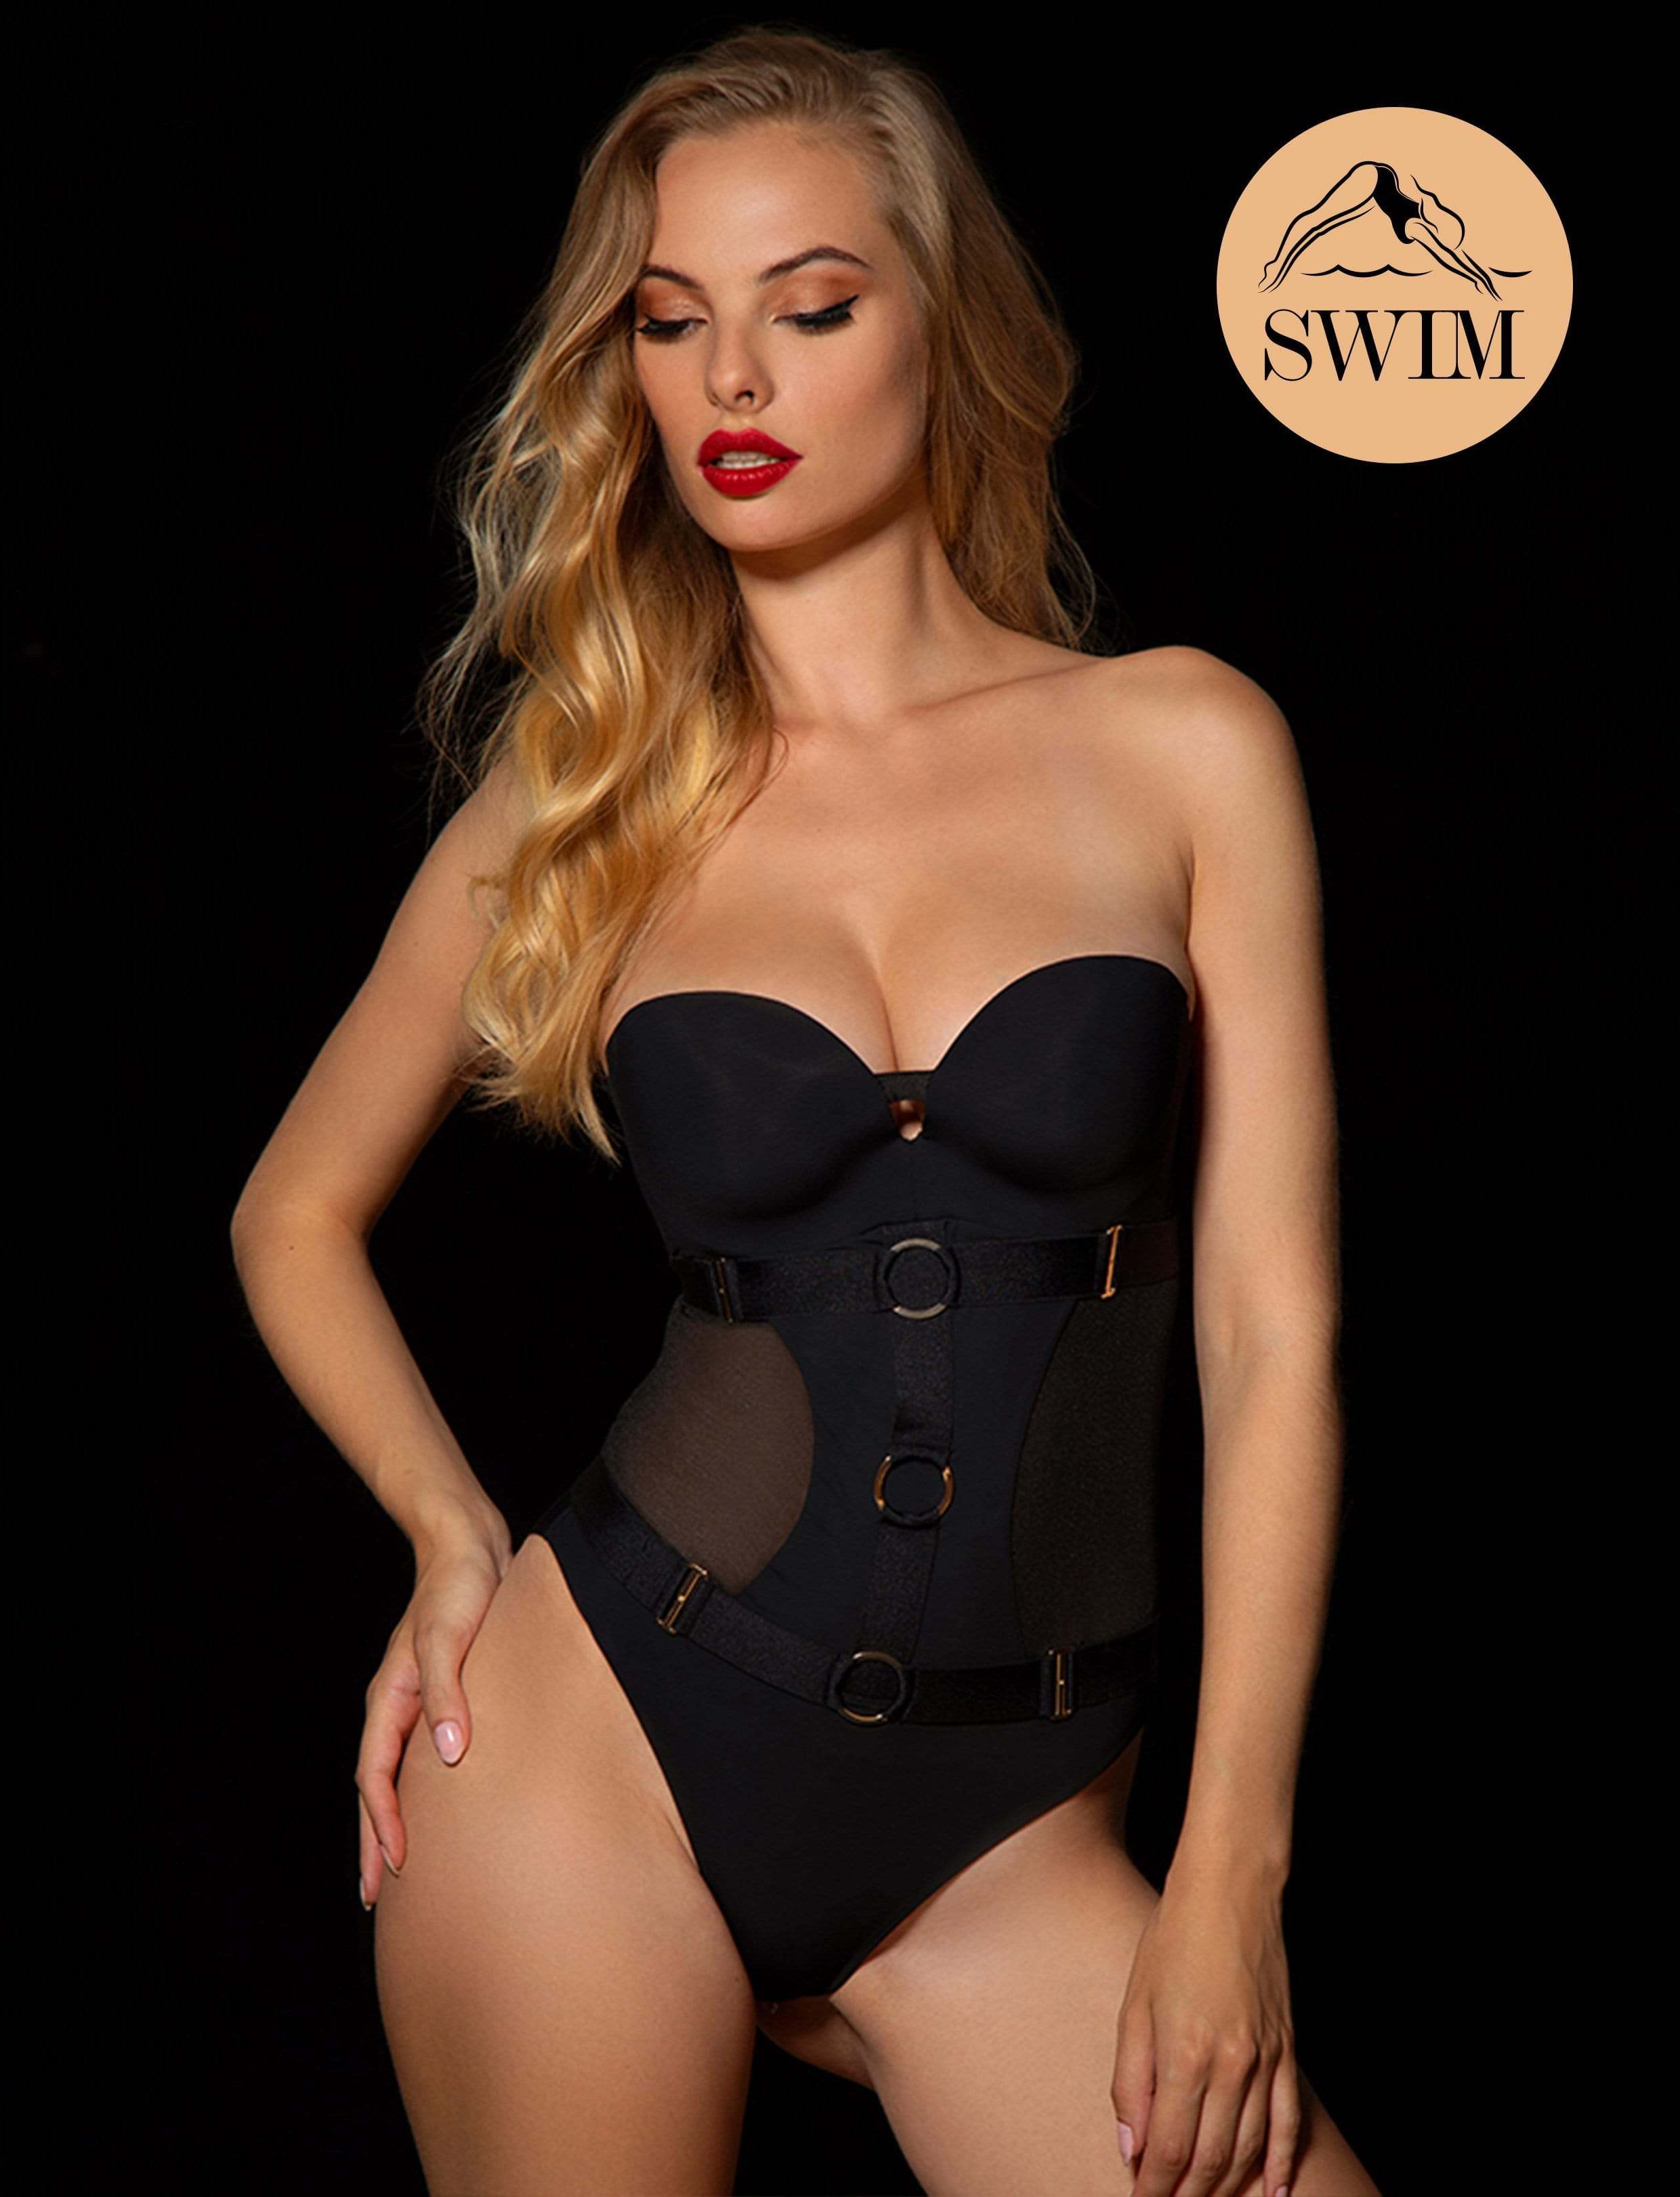 Octopussy Swimsuit - Shop Swimwear | Honey Birdette